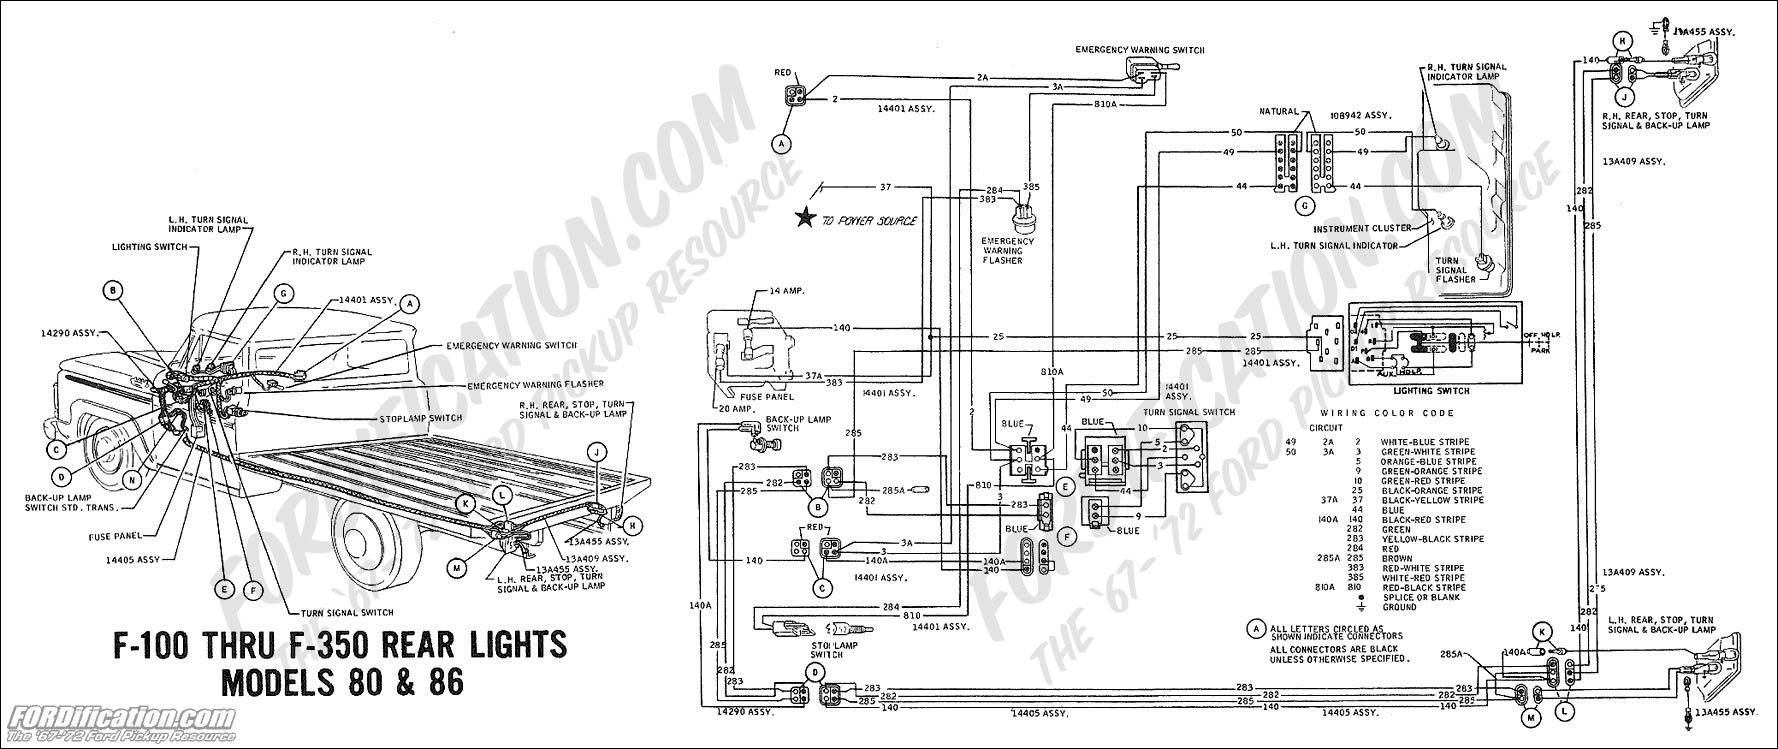 wiring_69rearlights mdls80 86 ford truck technical drawings and schematics section h wiring 2013 Ford F350 Wiring Diagram at panicattacktreatment.co